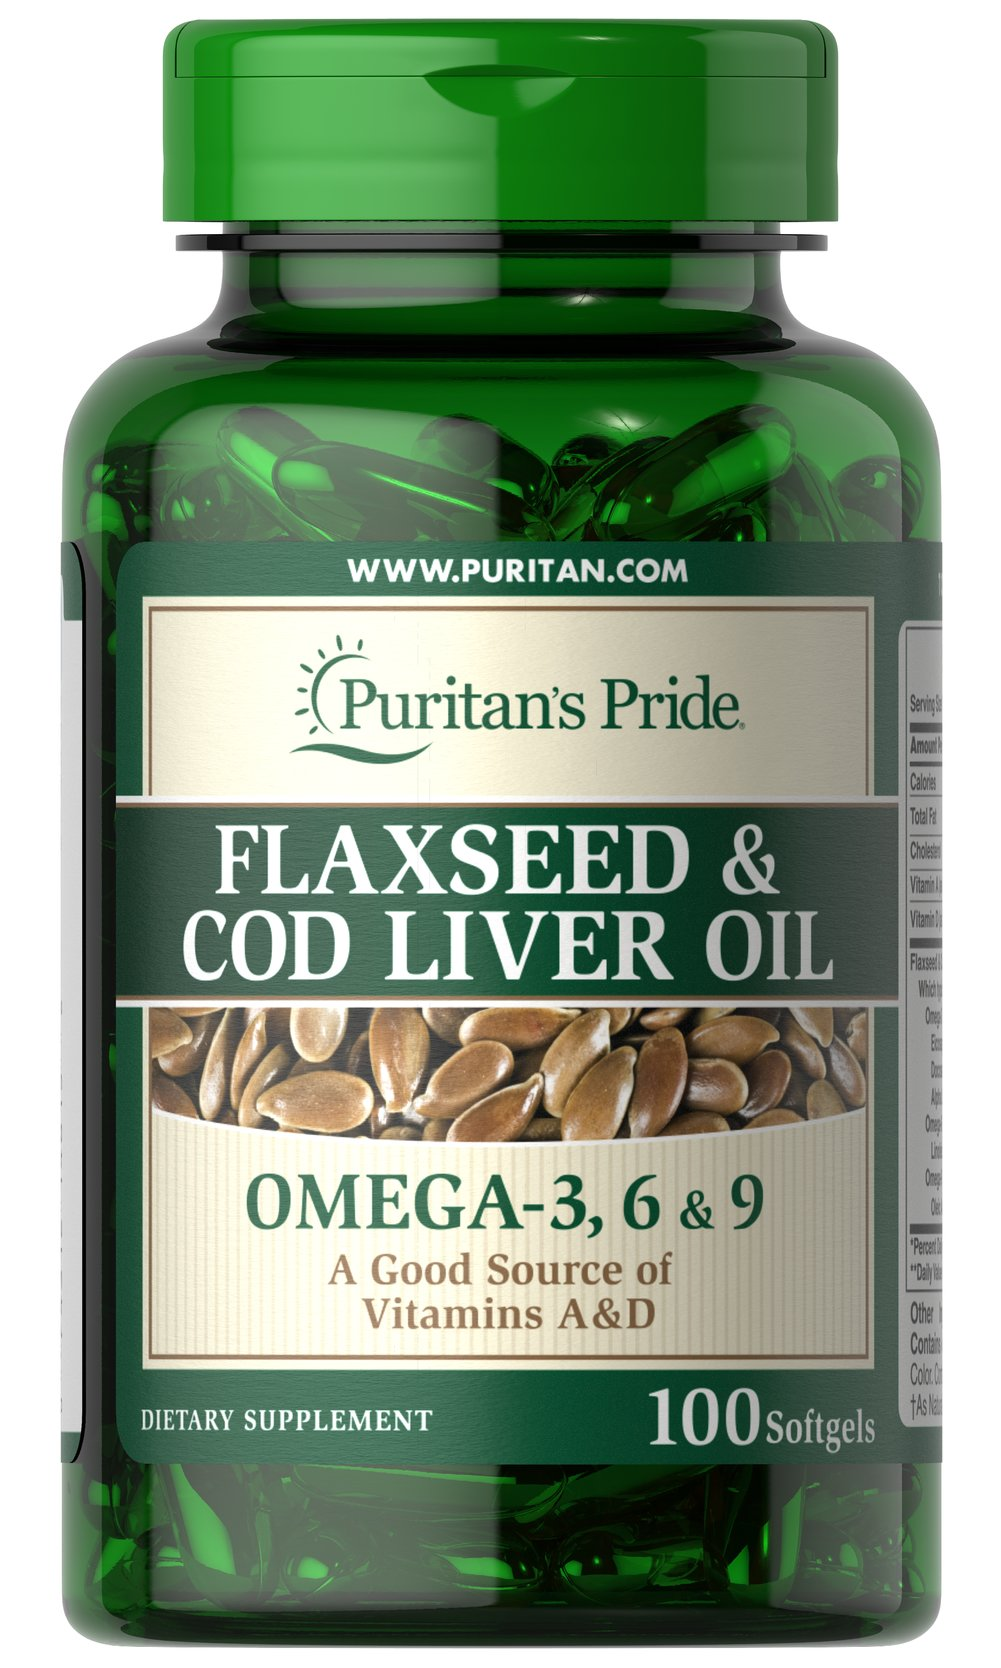 Flaxseed & Cod Liver Oil 1000 mg Omega 3, 6 & 9